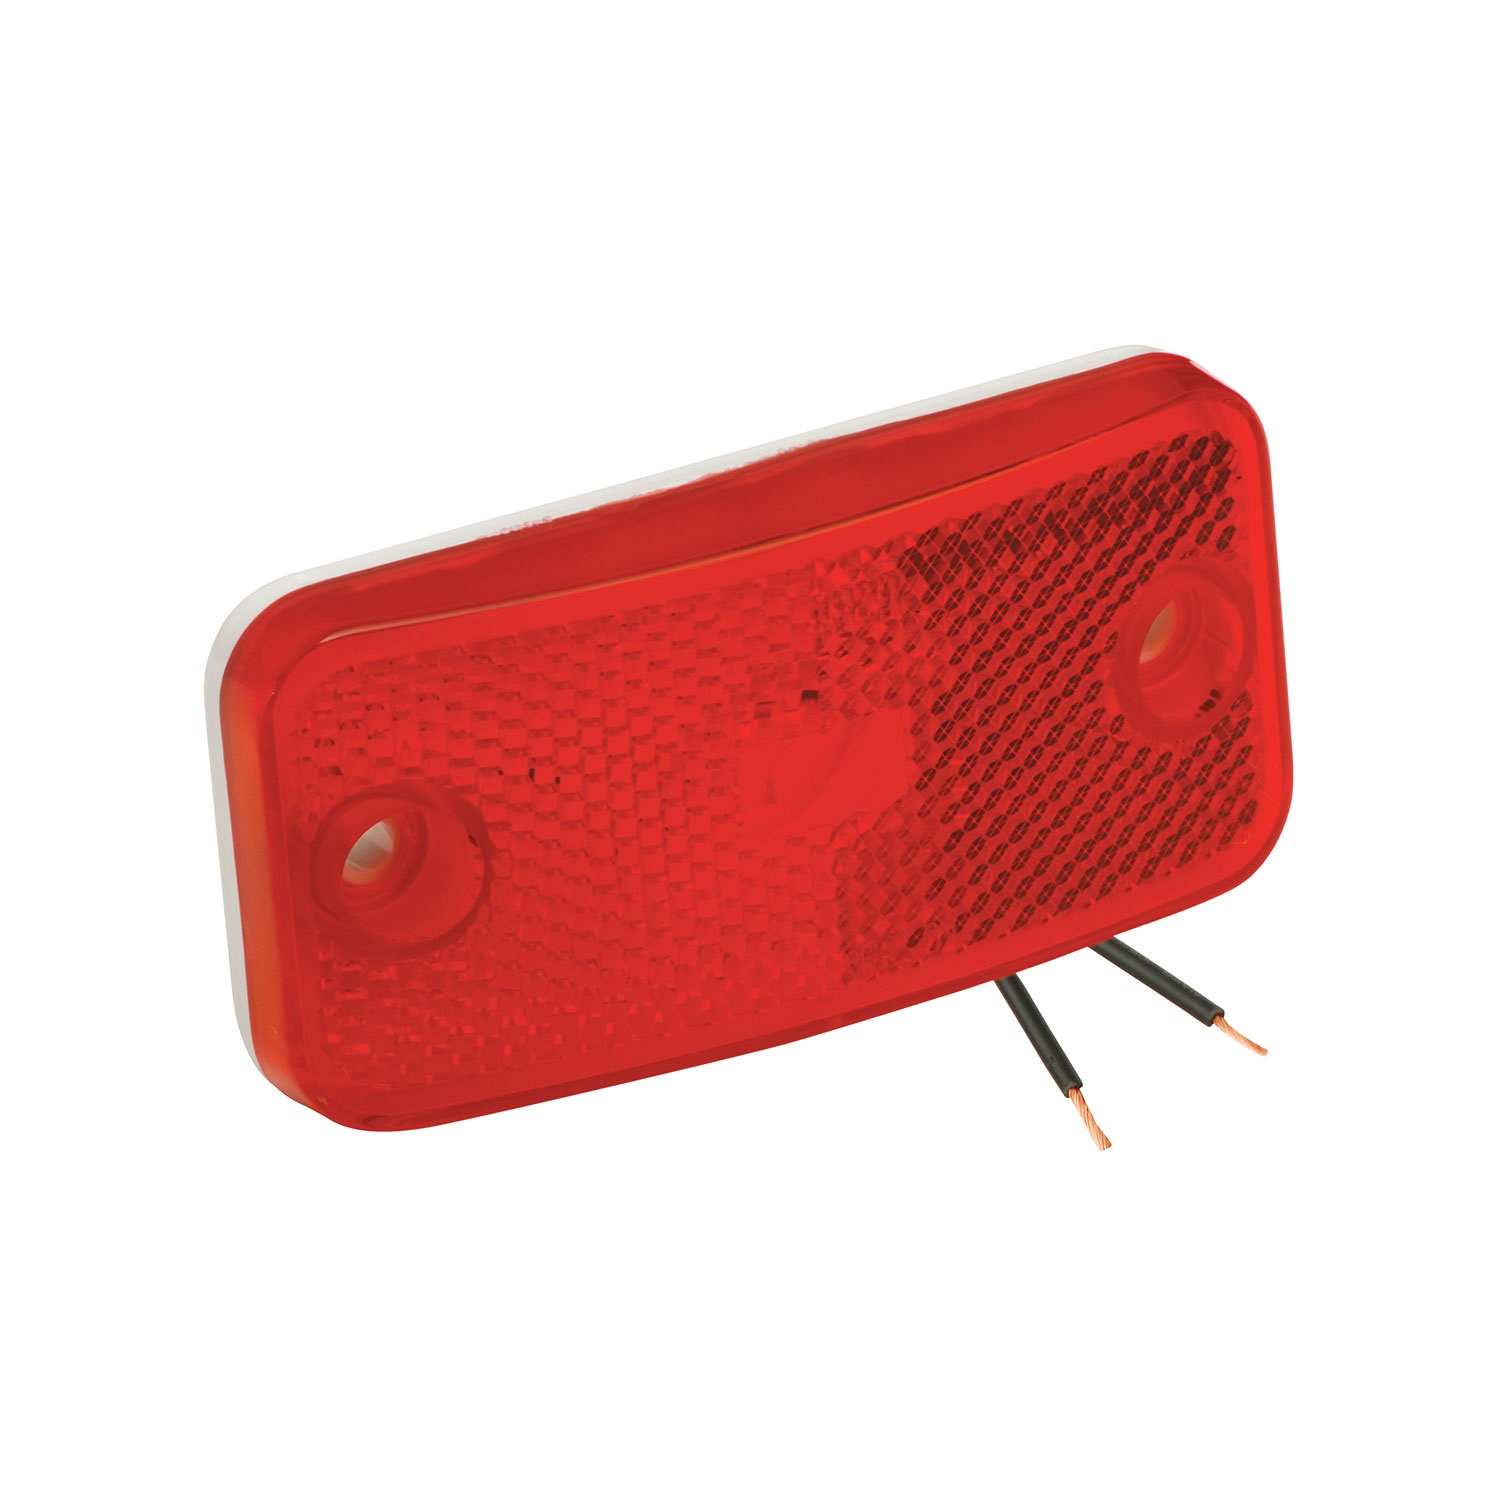 Red Bargman 40-37-001 Clearance Light Sealed Module